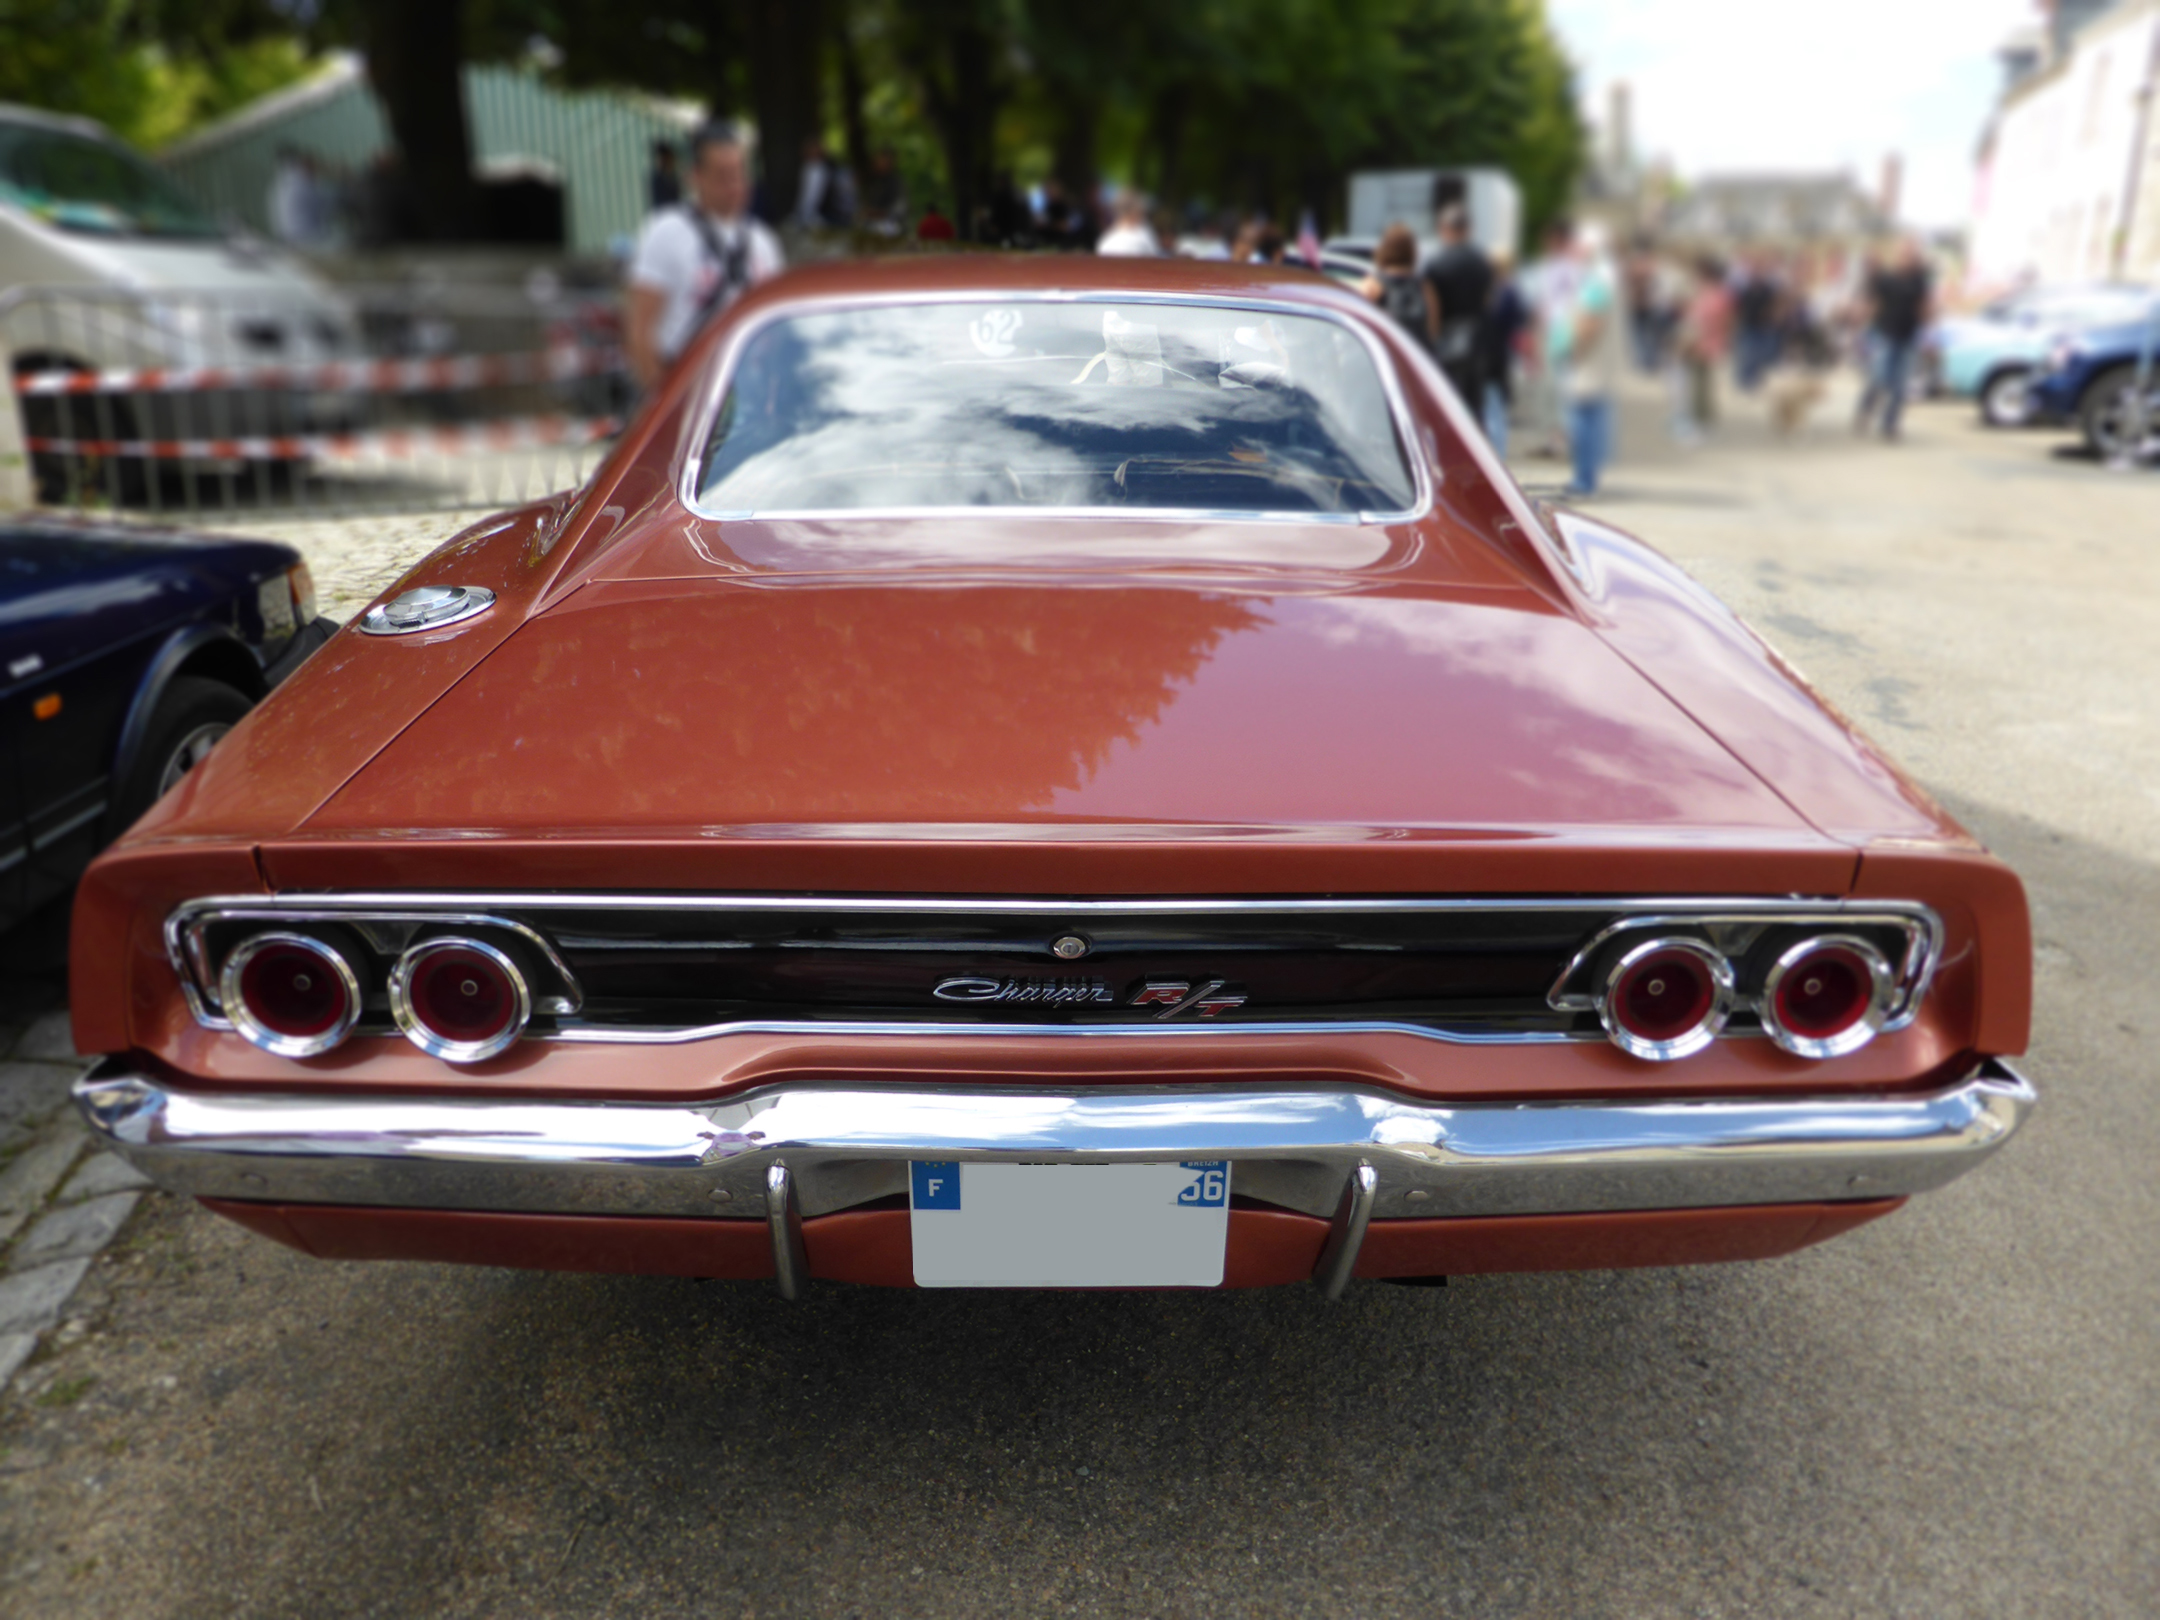 Dodge Charger R/T - 1968 - rear face - US Cars and Bikes 2017 - Photo by ELJ